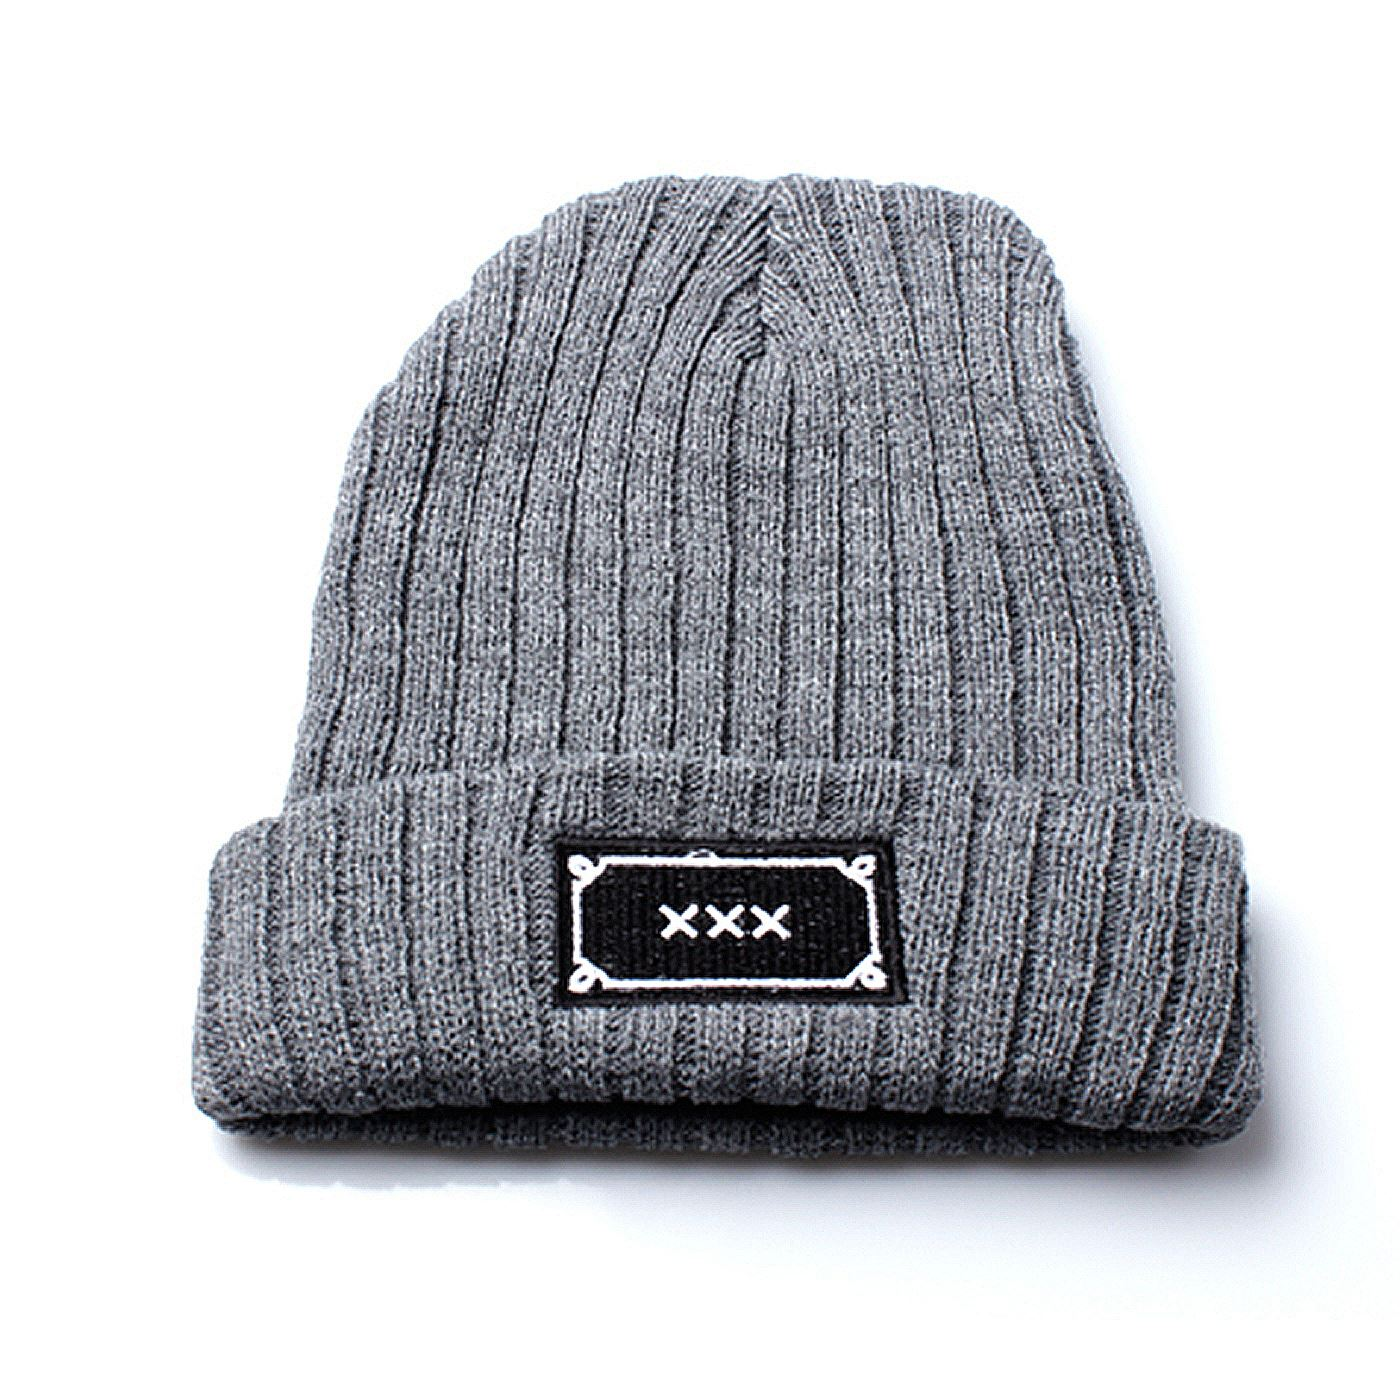 Details about Unisex Grey Ribbed Beanie Hat with White Embroidered XXX  Design 614da50168a8